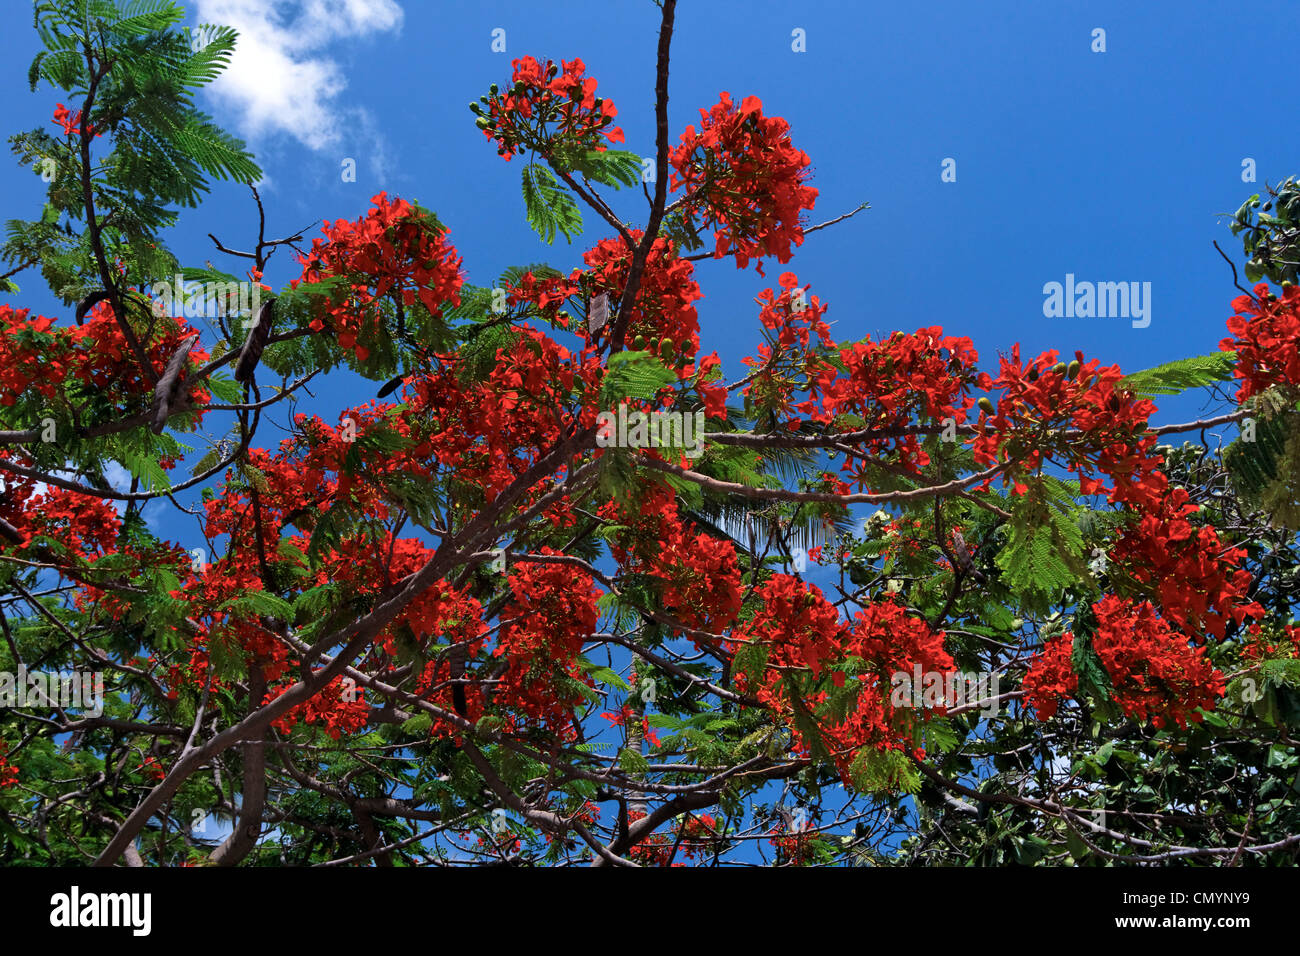 West Indies, Aruba, Flame Tree, Royal poinciana - Stock Image